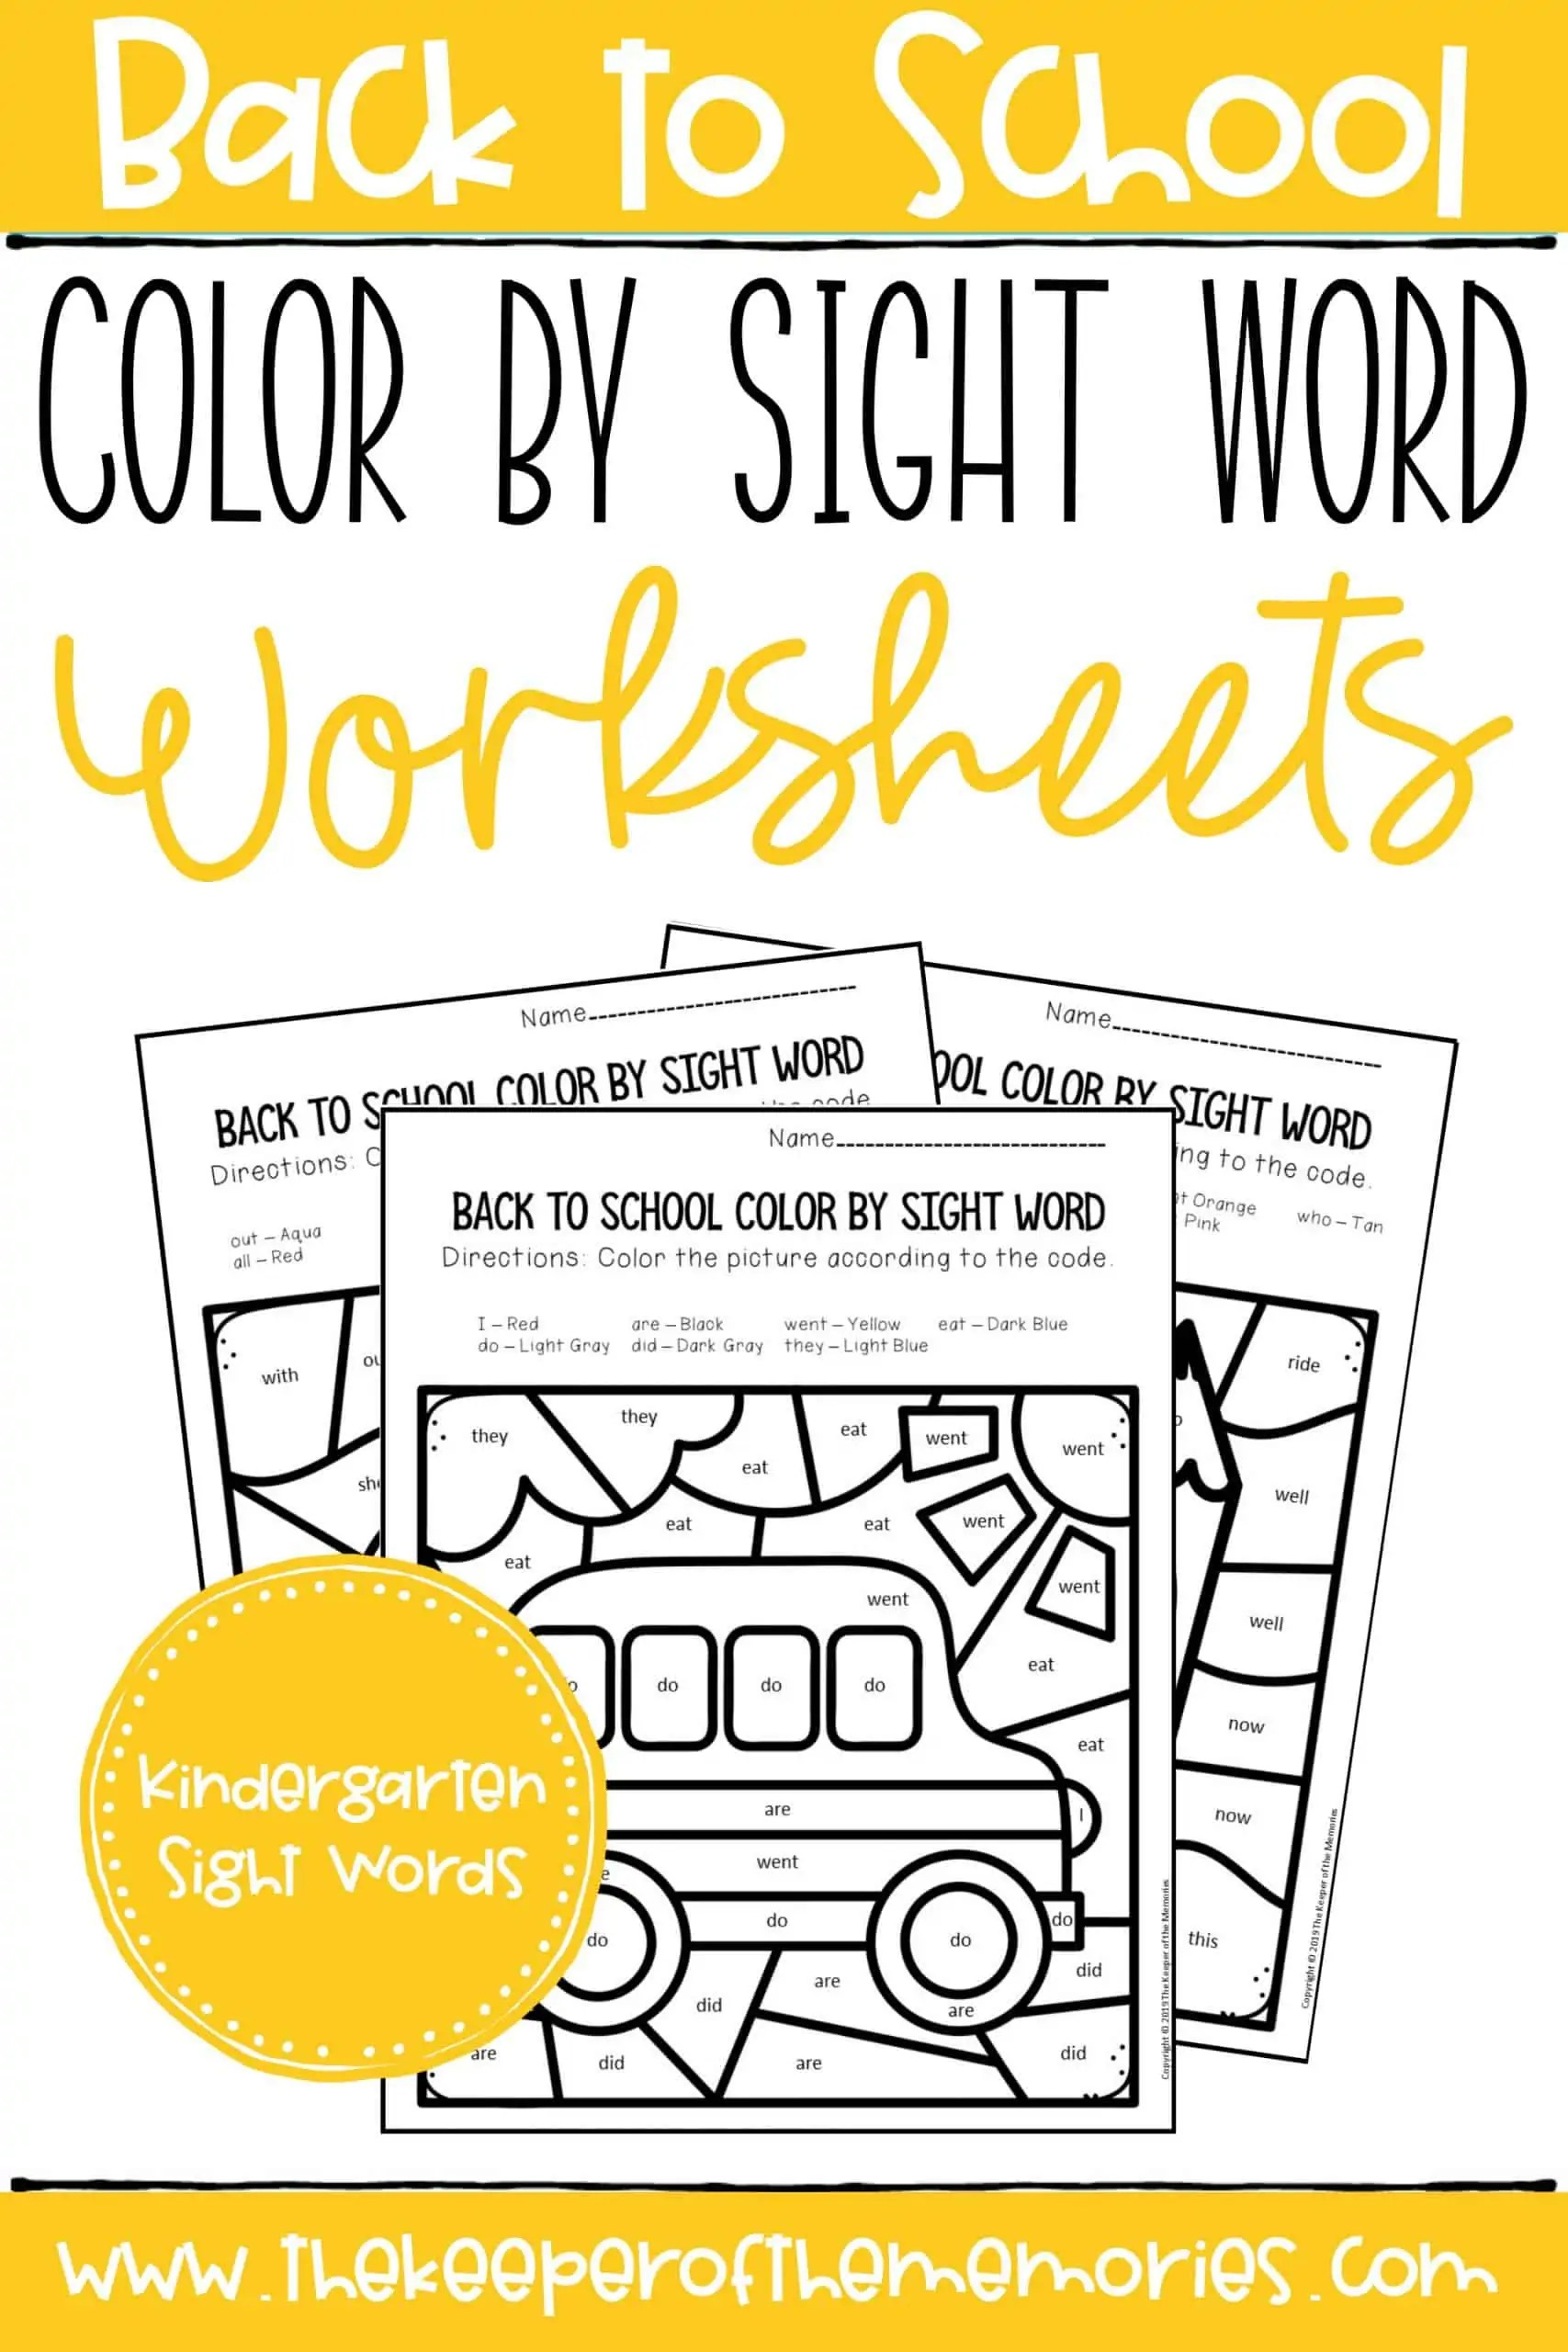 Color By Sight Word Back To School Kindergarten Worksheets